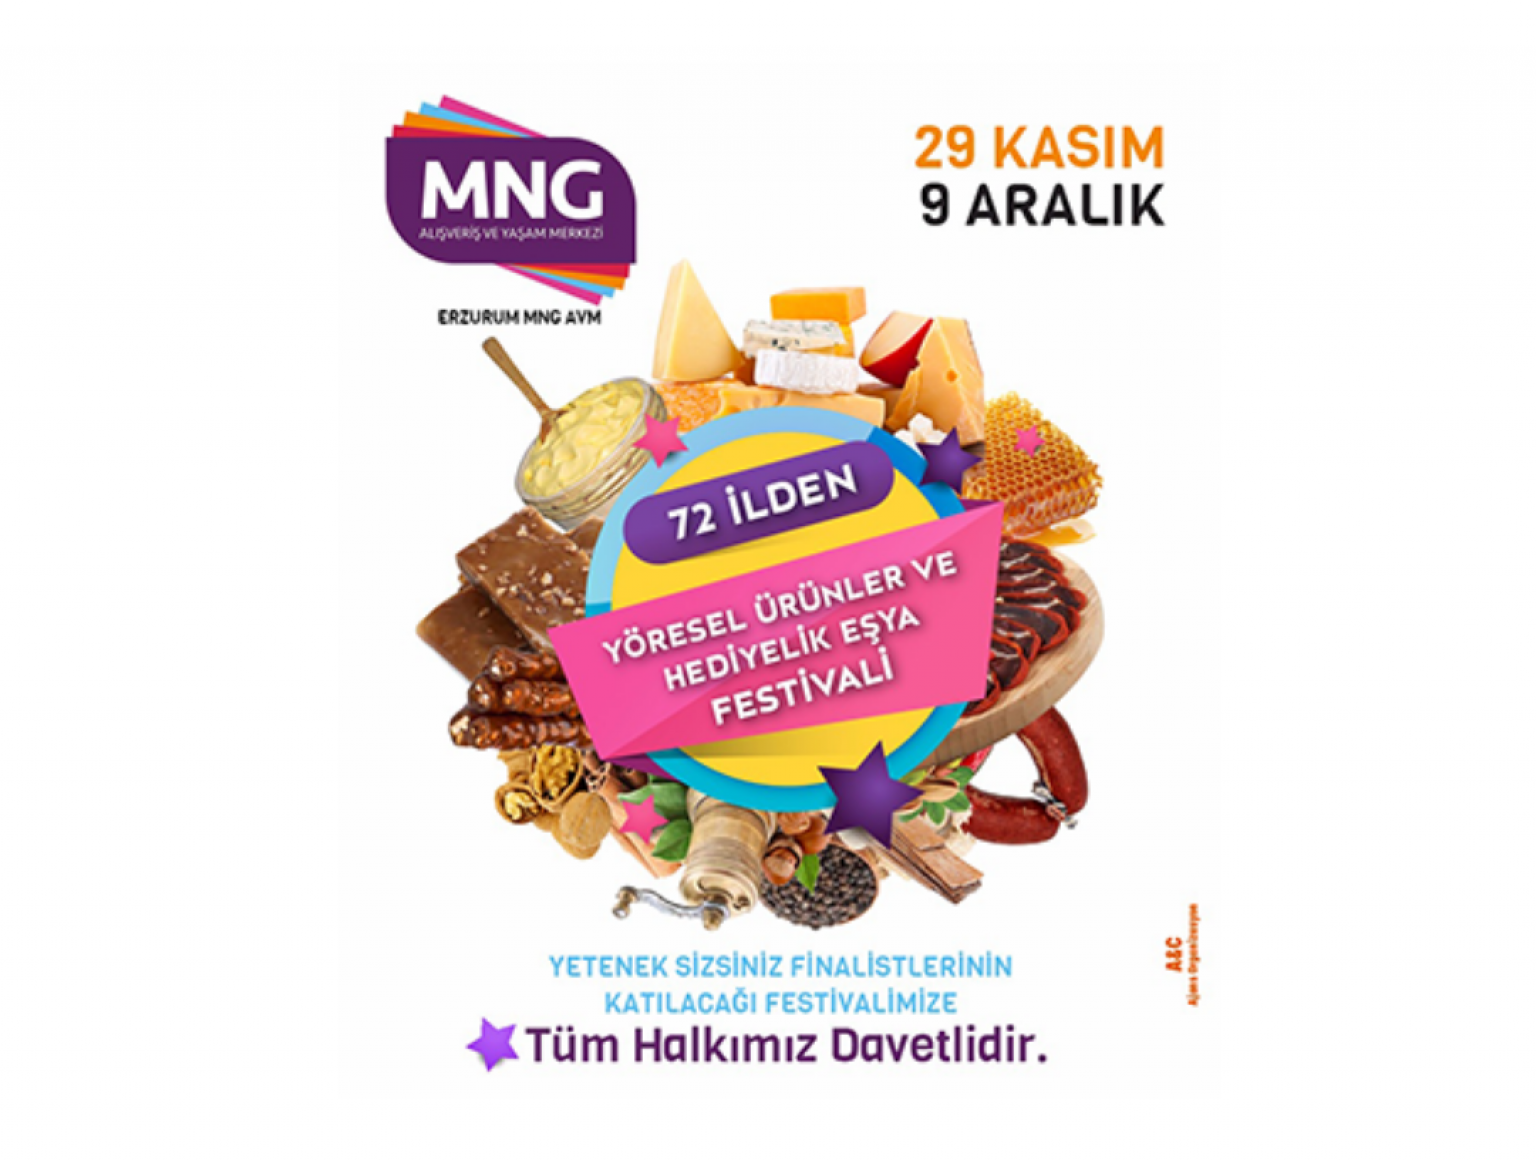 MNG SHOPPİNG MALL